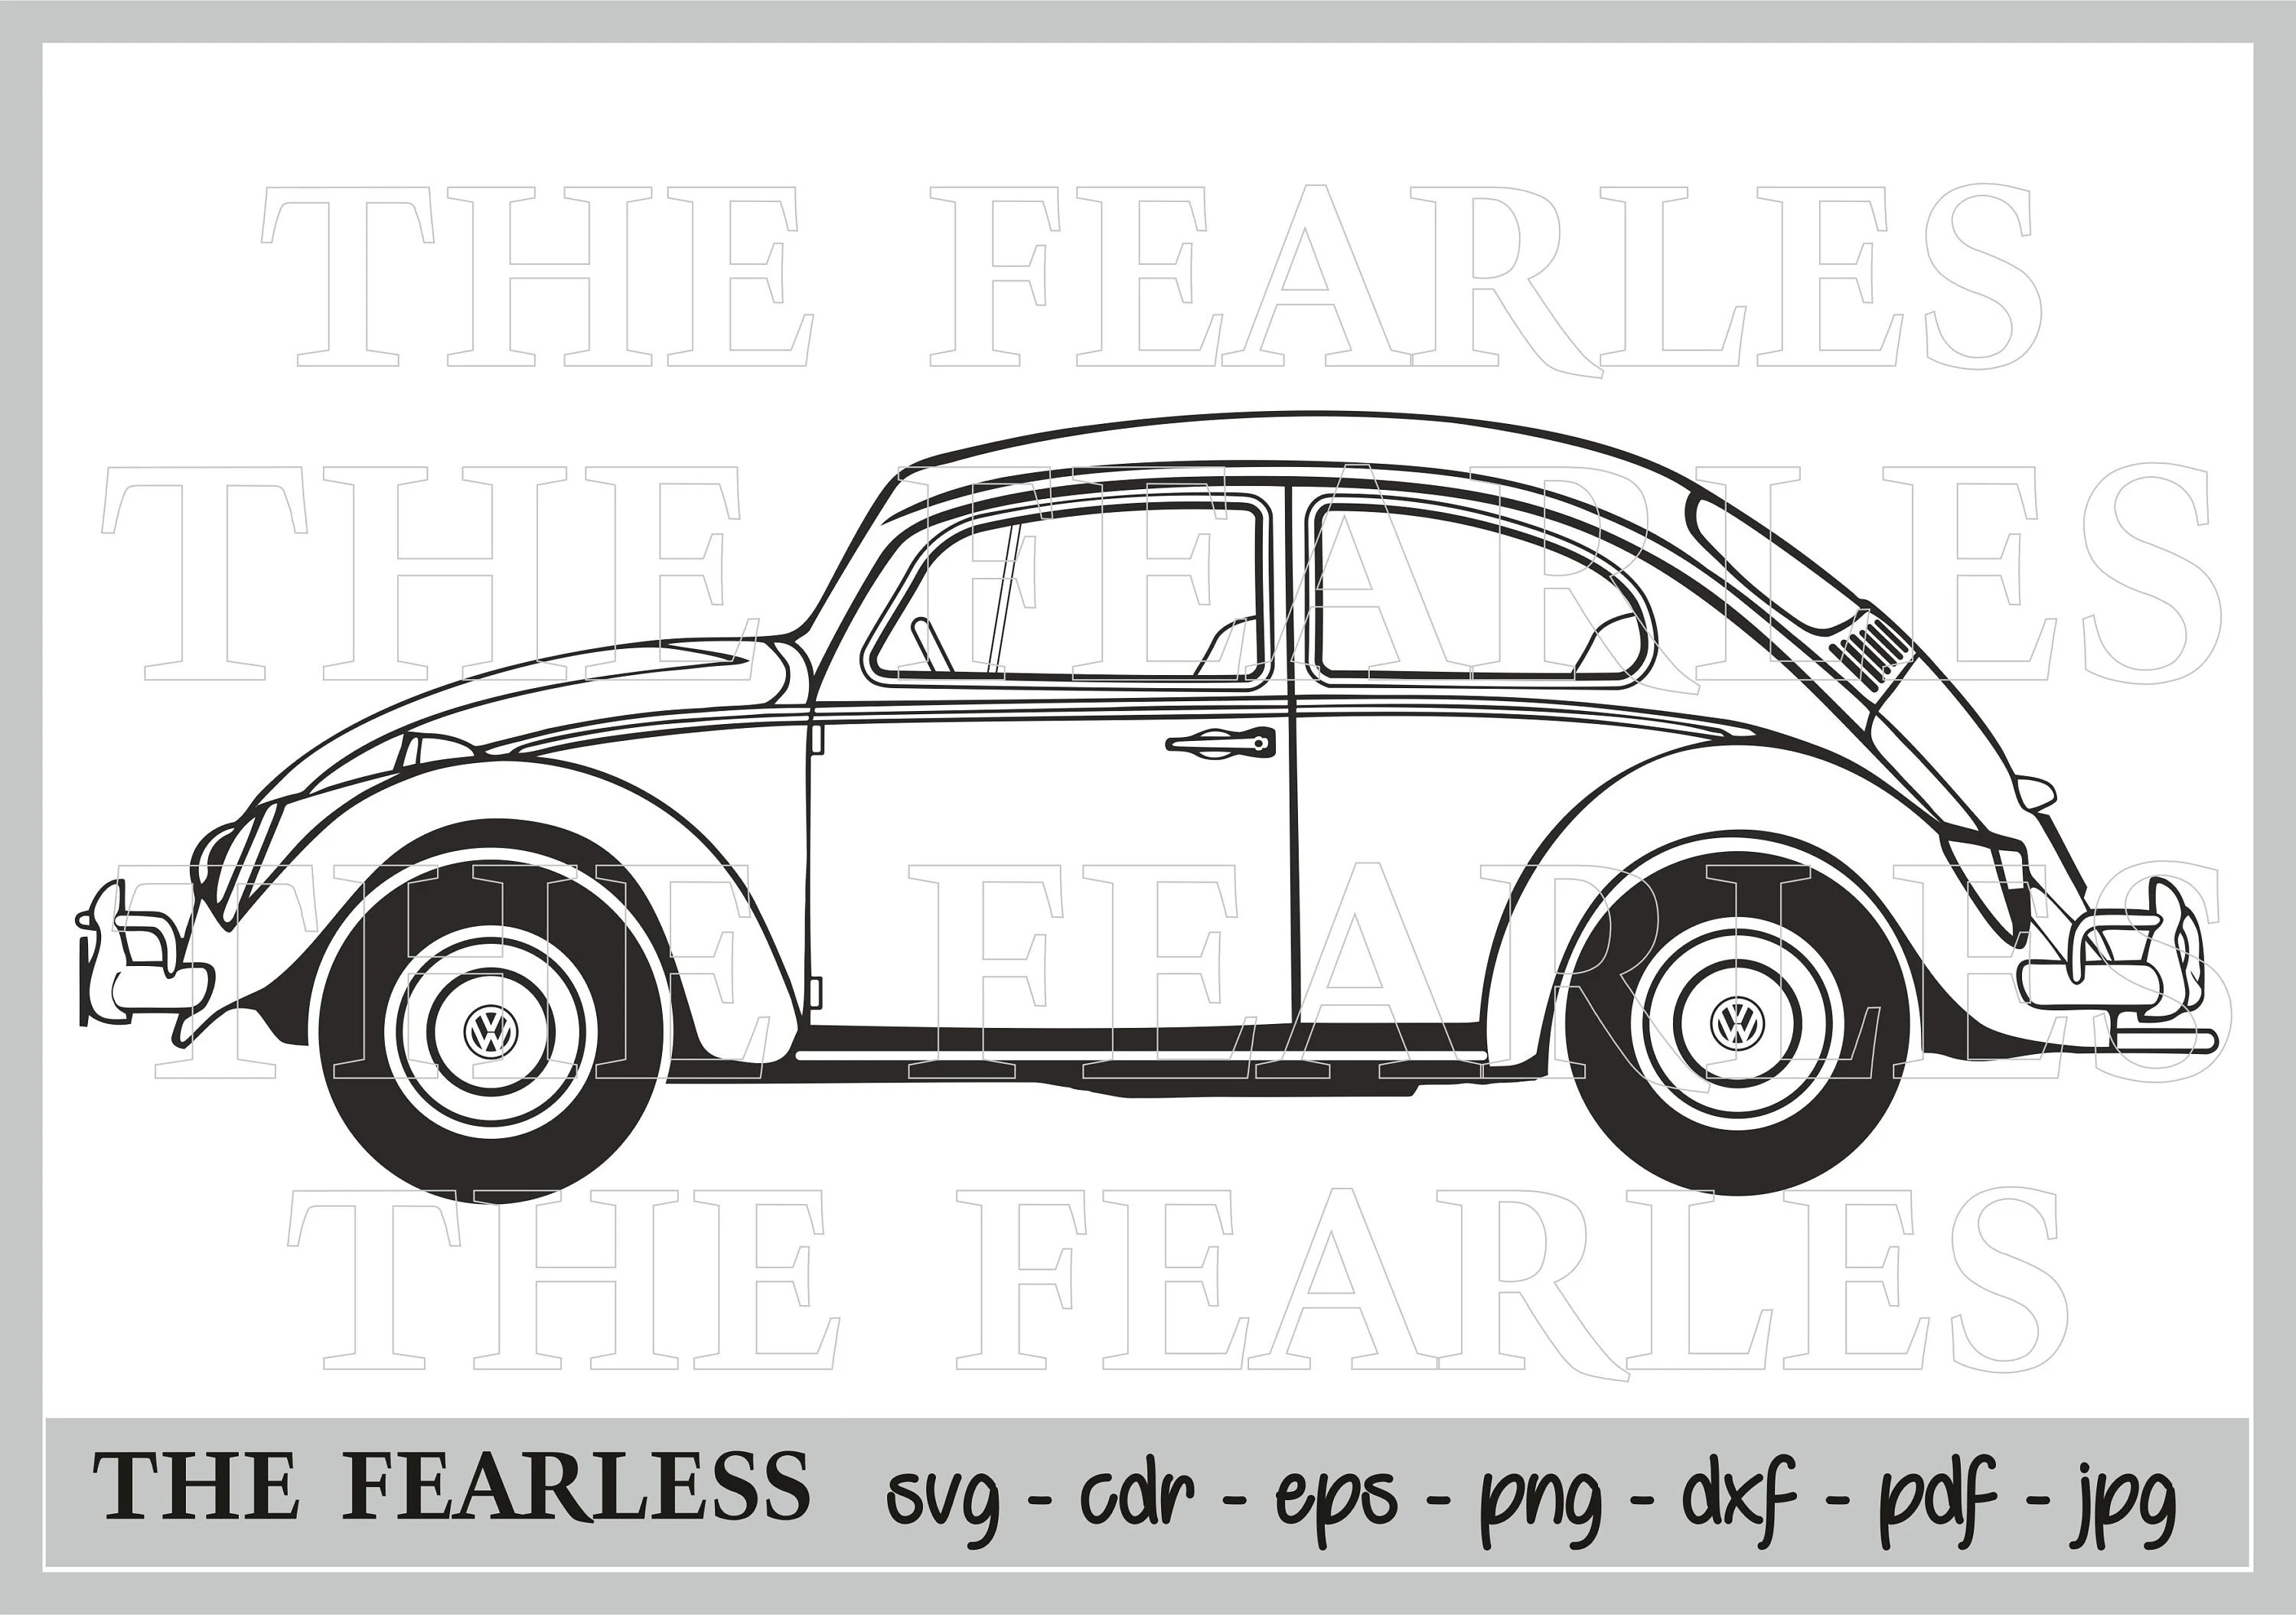 Volkswagen Beetle Pdf ~ Hina Easton